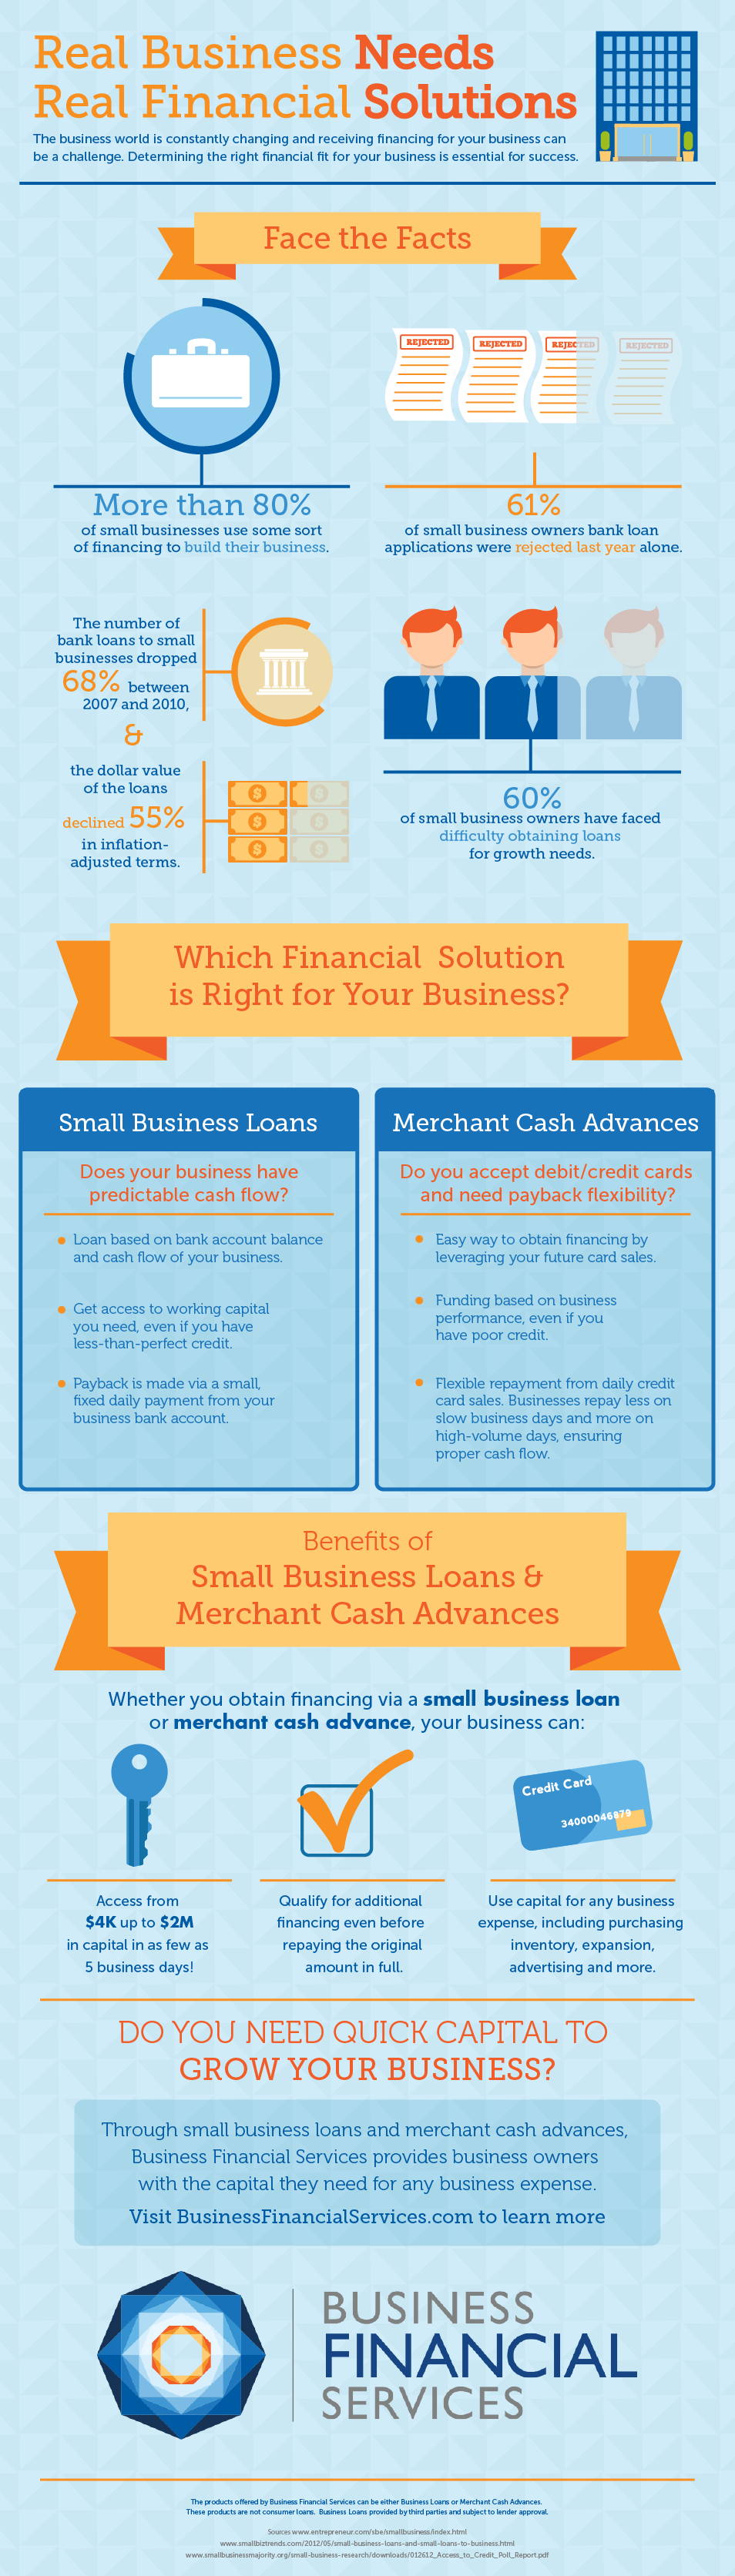 Business Loans from Business Financial Services